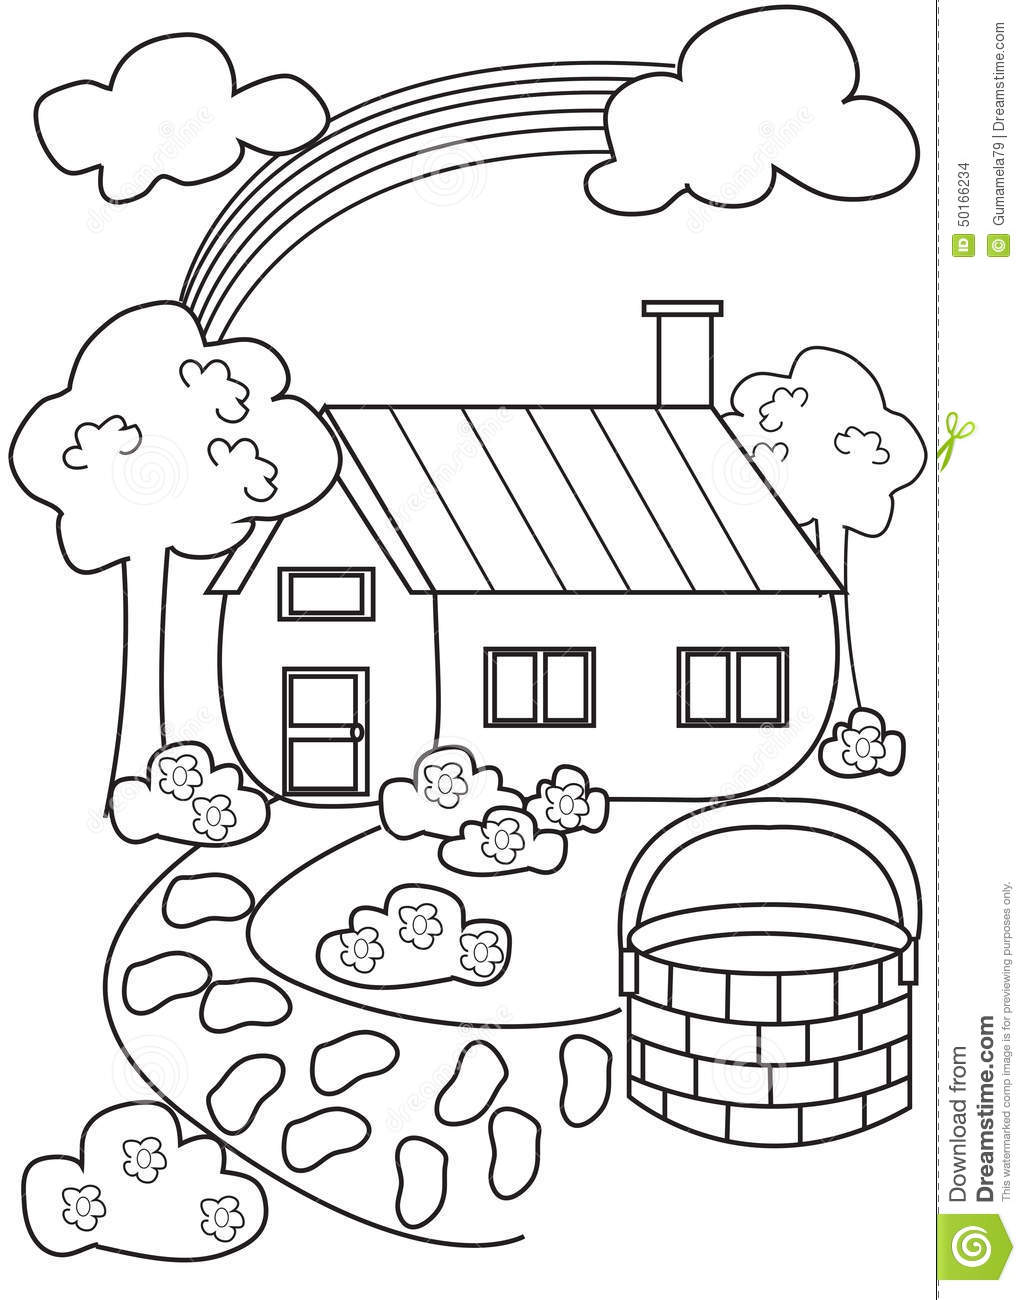 coloring book pages house - photo#28